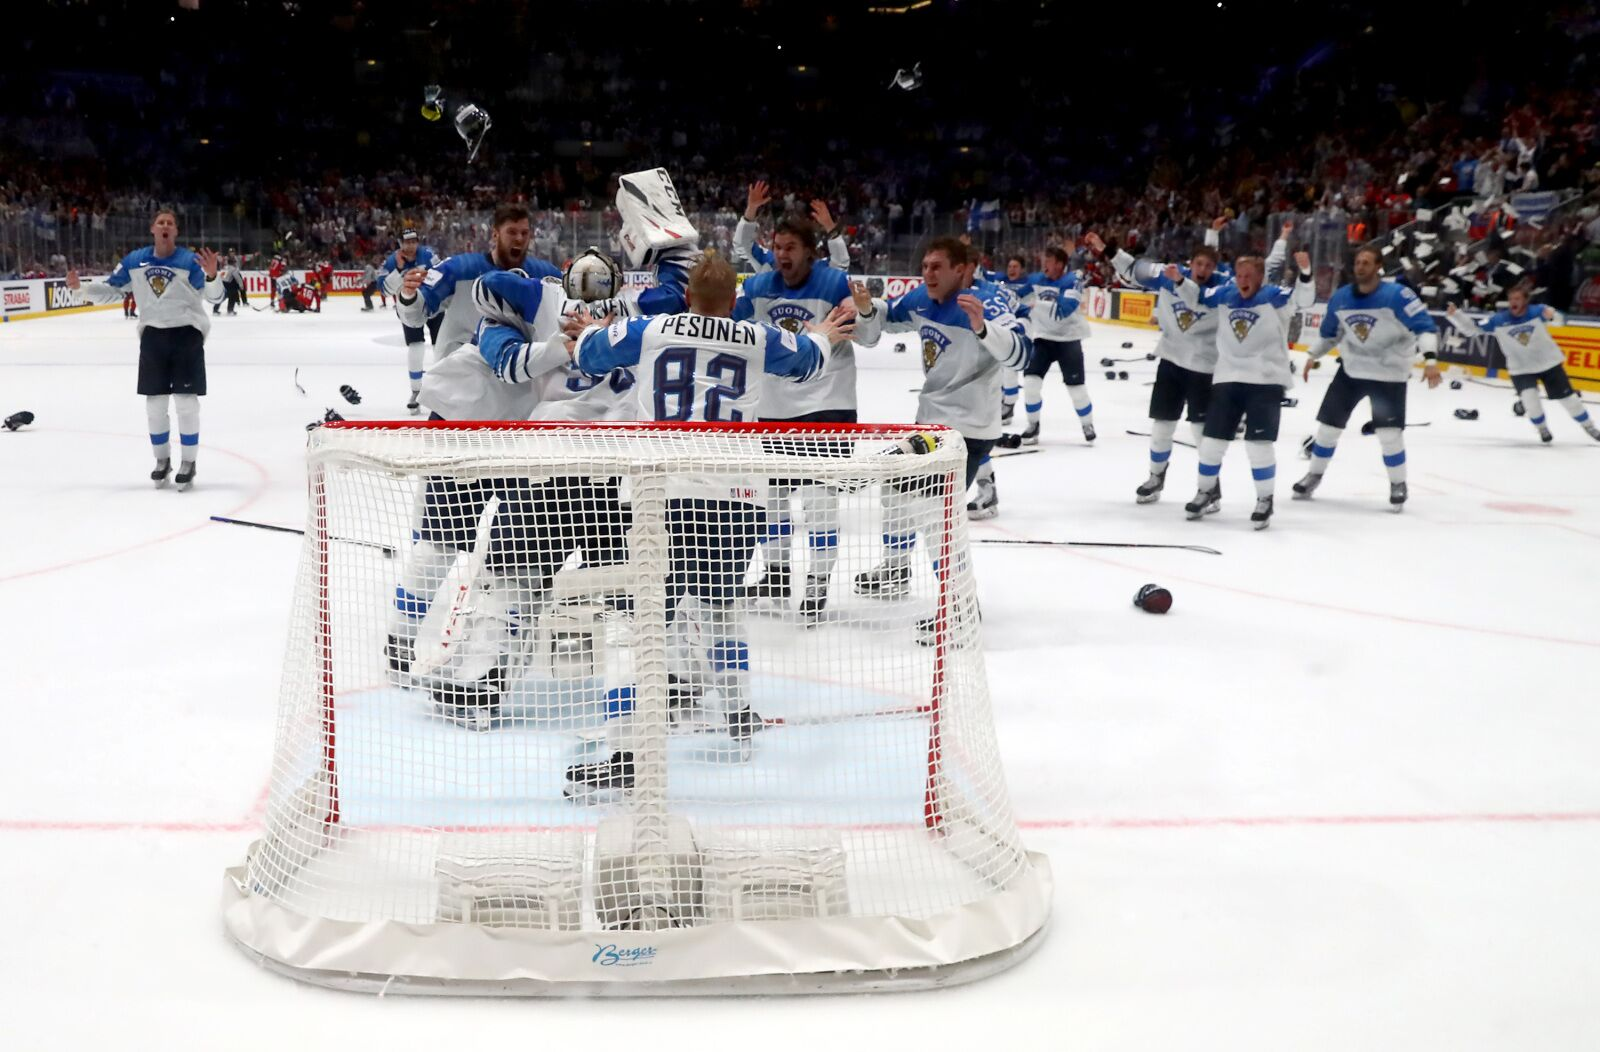 Detroit Red Wings: Finland takes home Gold Medal